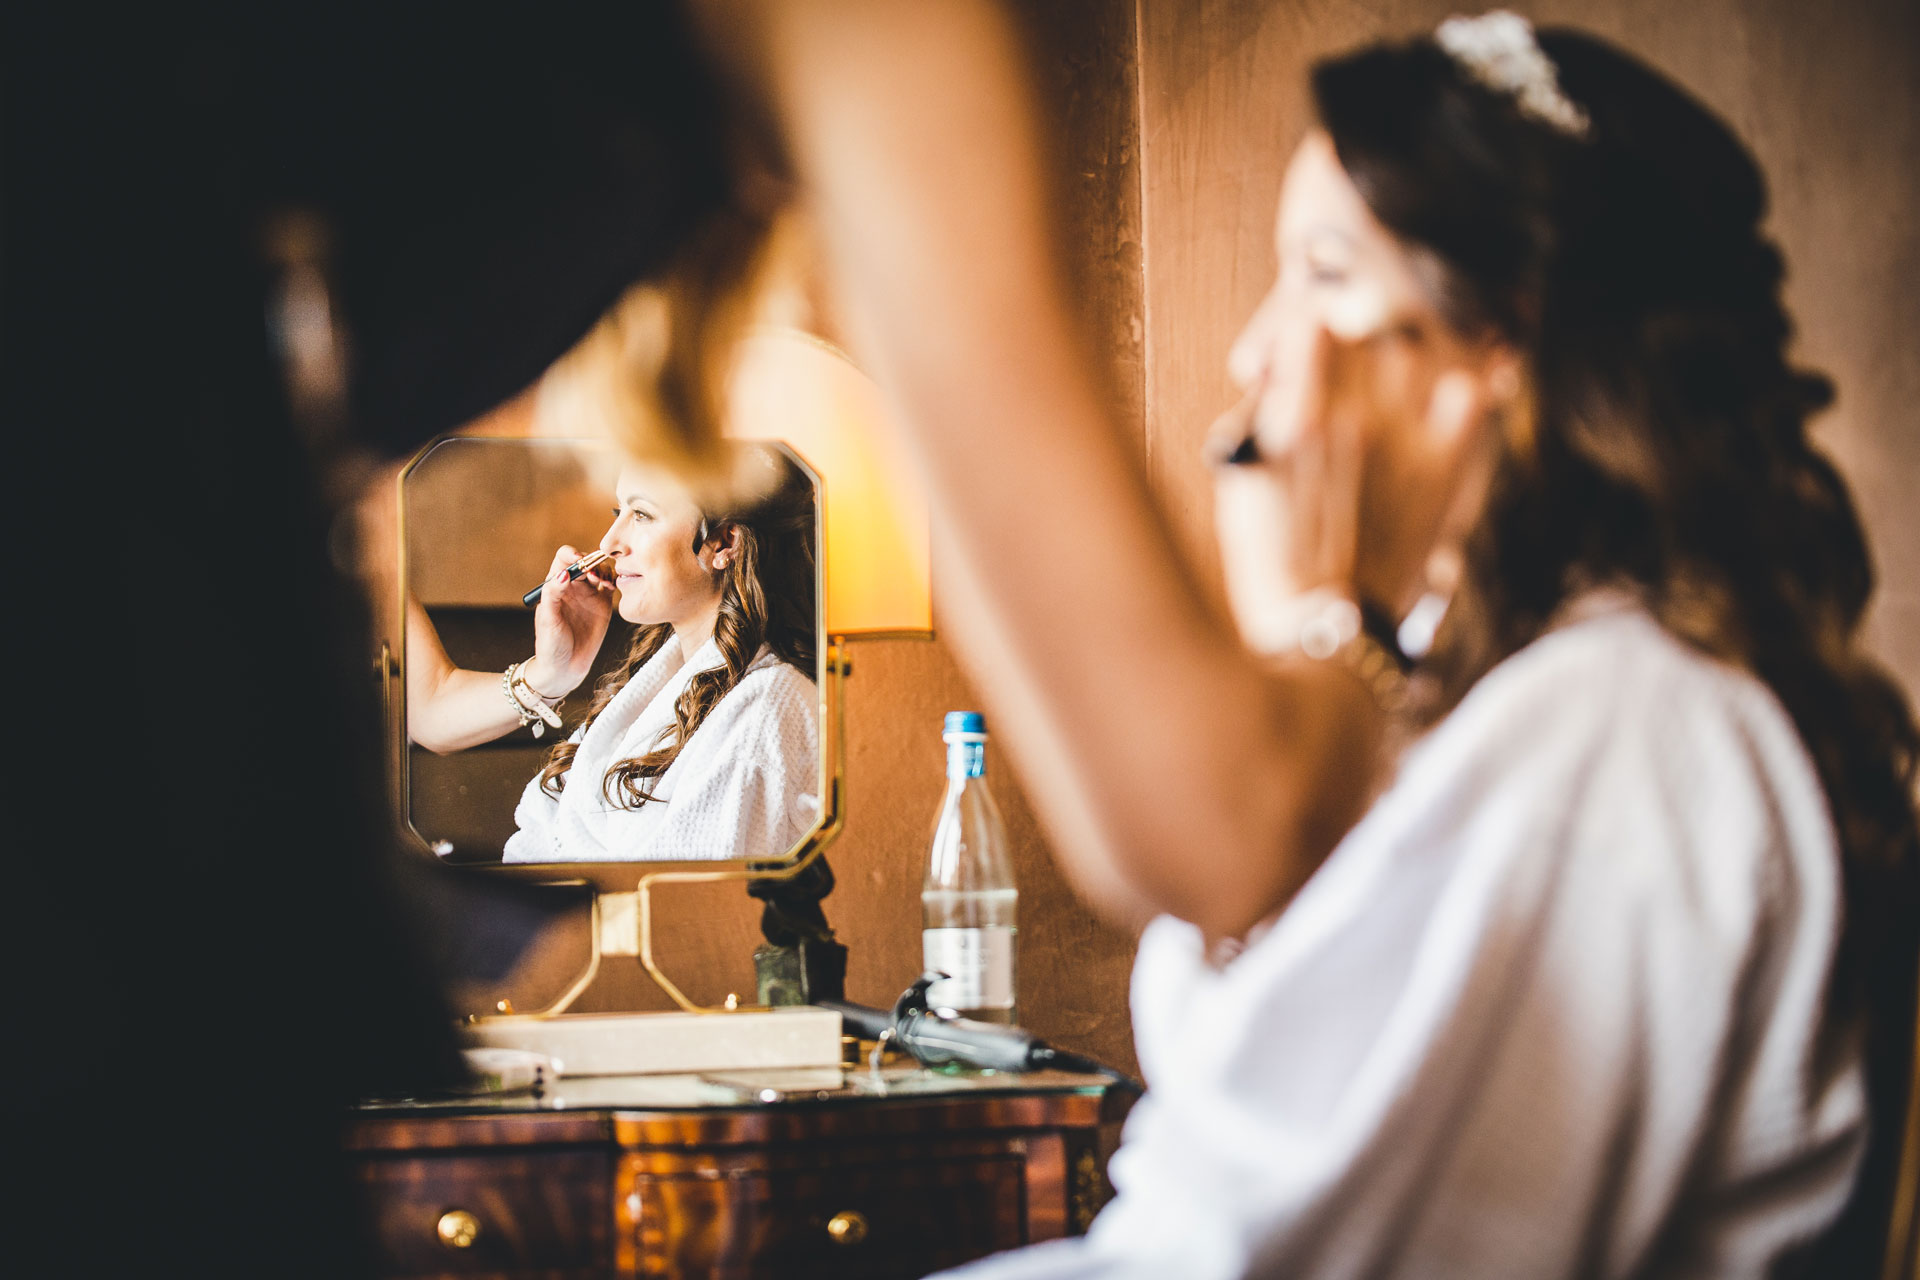 Bauer Palazzo - Luxury Hotel Weddings in Venice | The makeup artist readies the bride for her ceremony